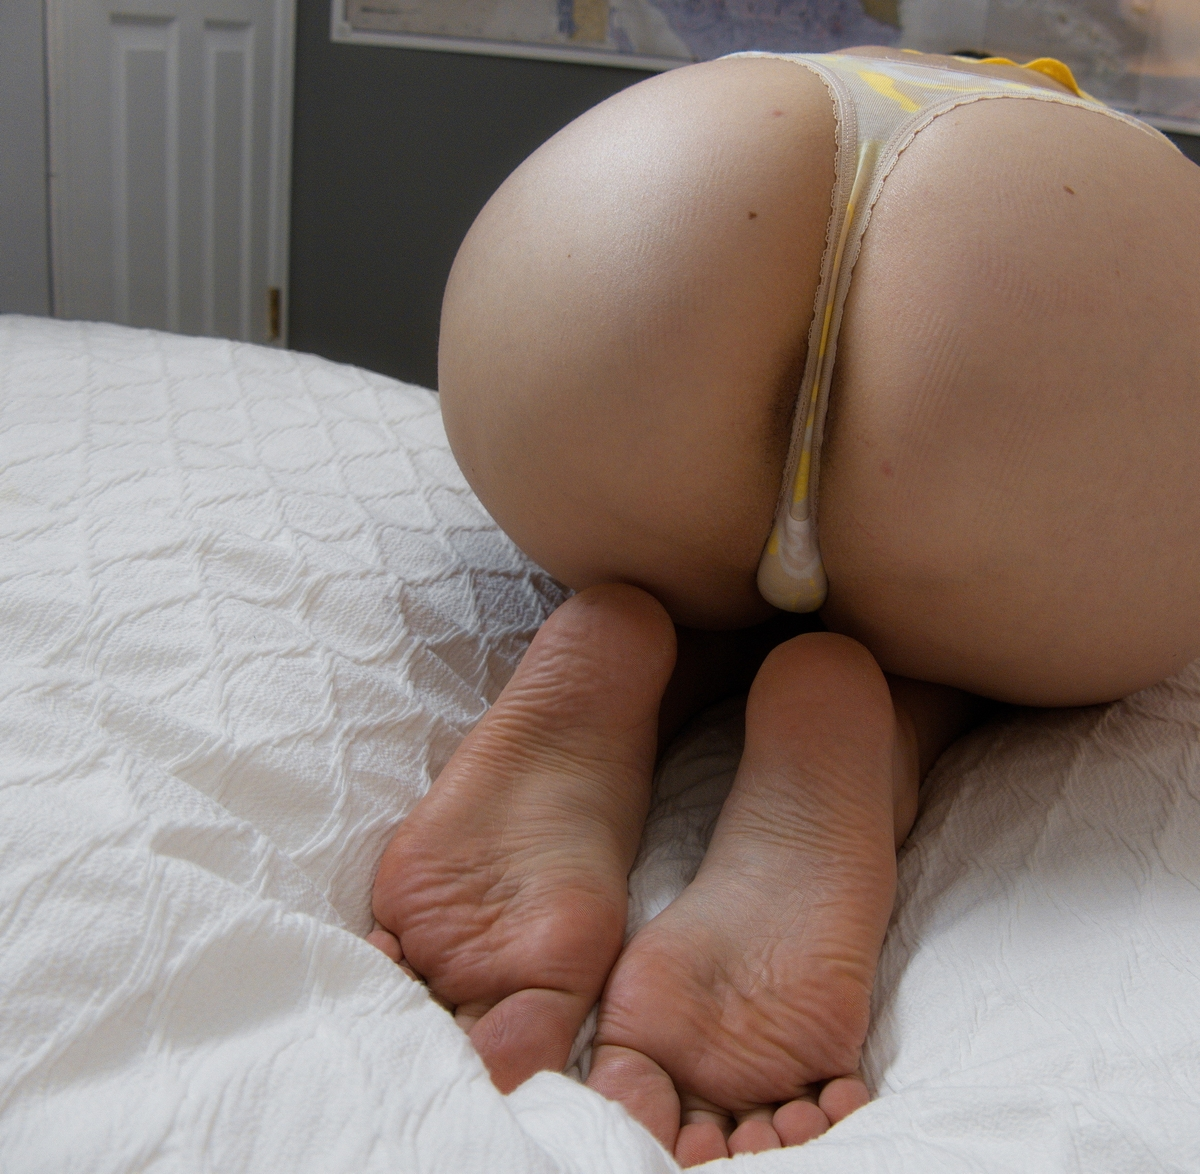 a girl named Ruby showing her ass and feet